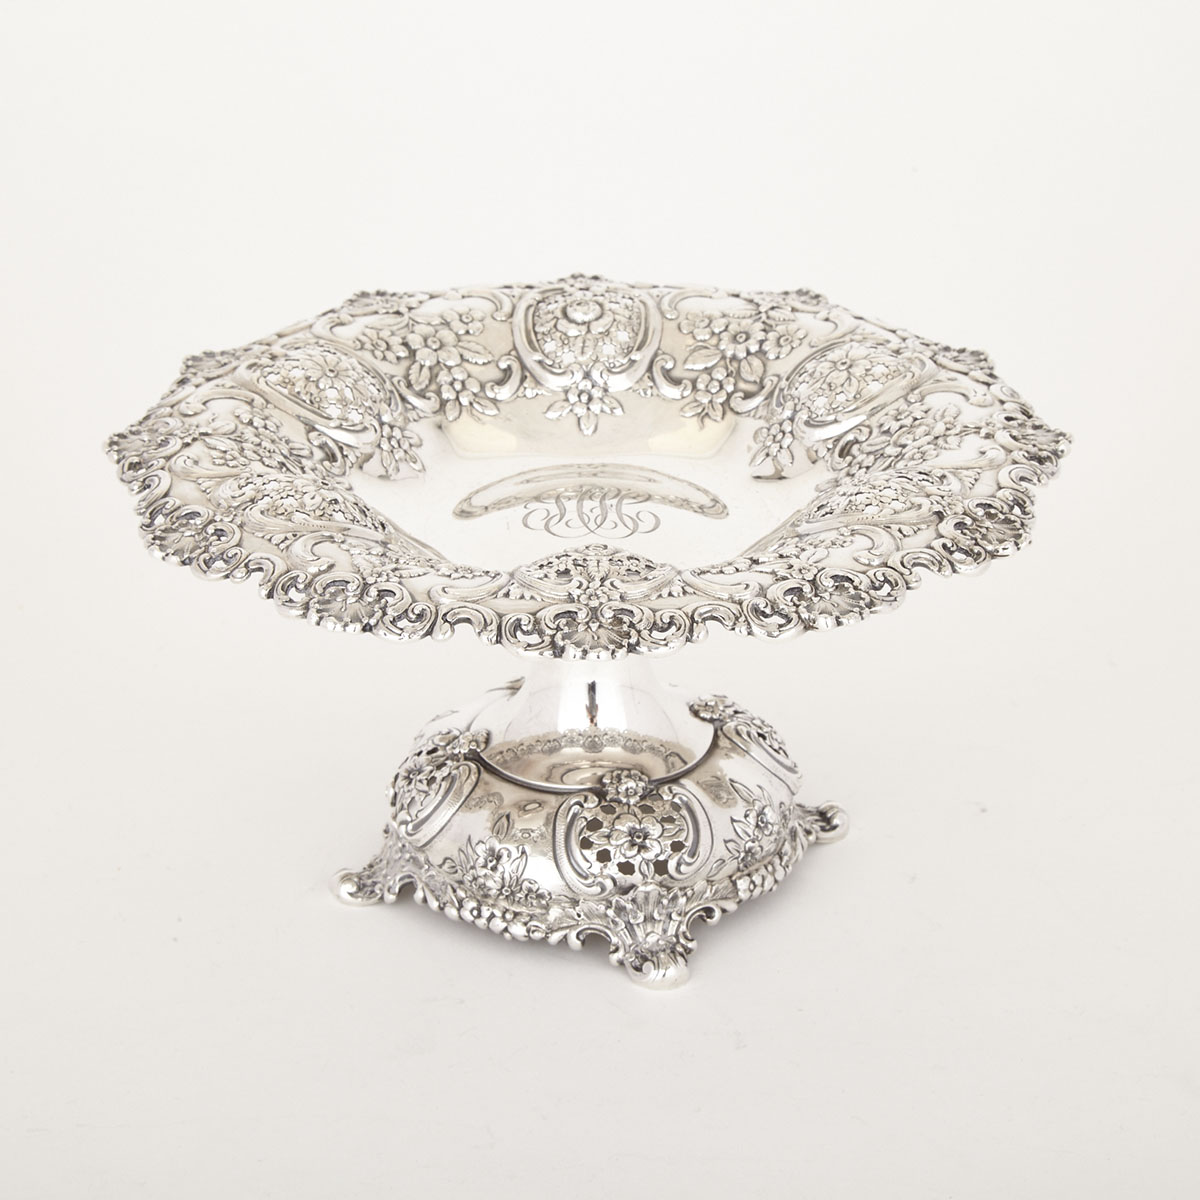 American Silver Pierced Comport, Tiffany & Co., New York, N.Y., c.1902-07